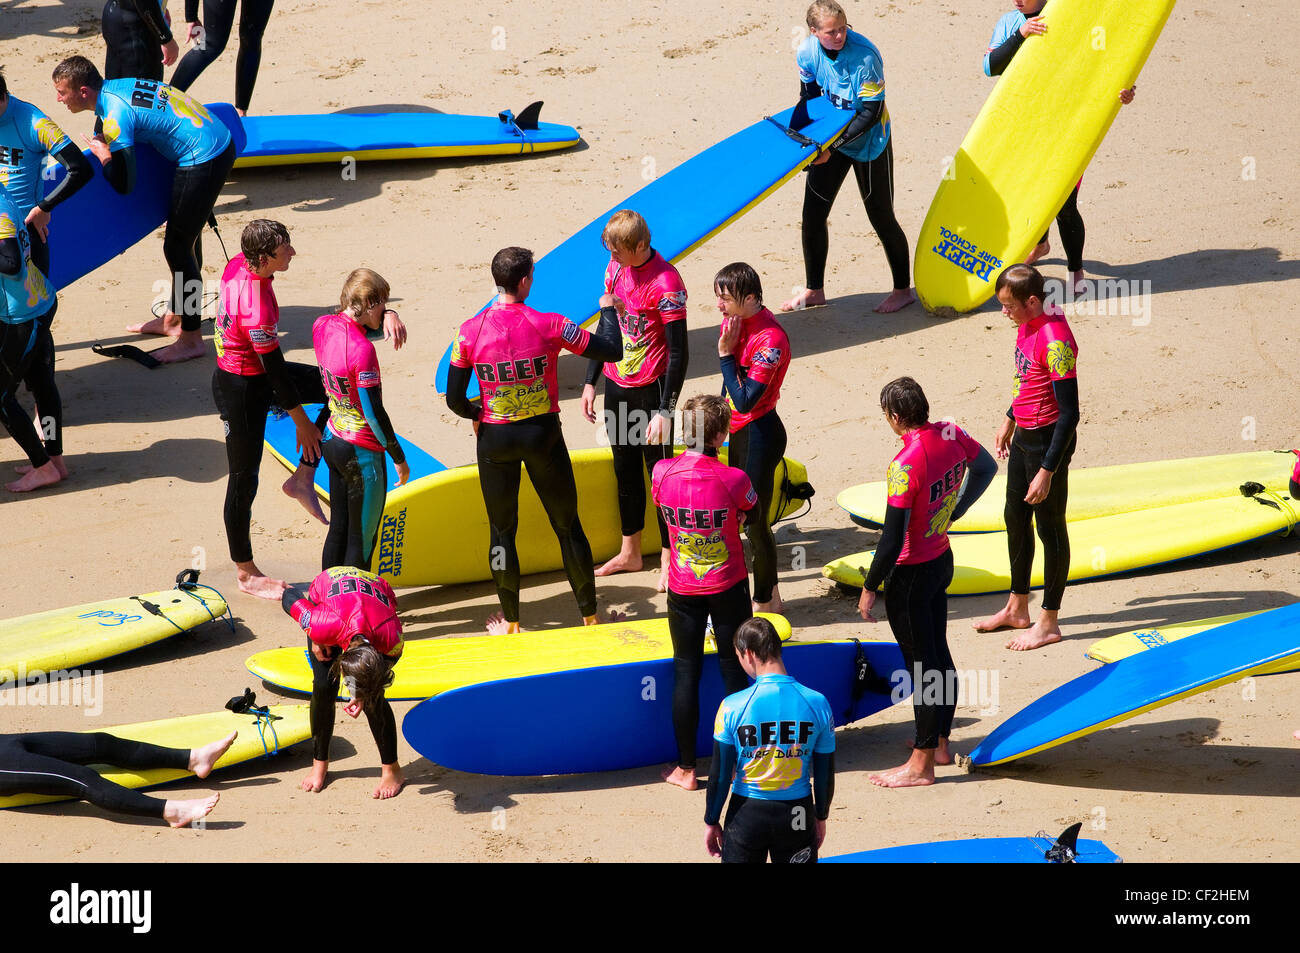 Young people receiving instructions at a surf school on a beach in Newquay. - Stock Image